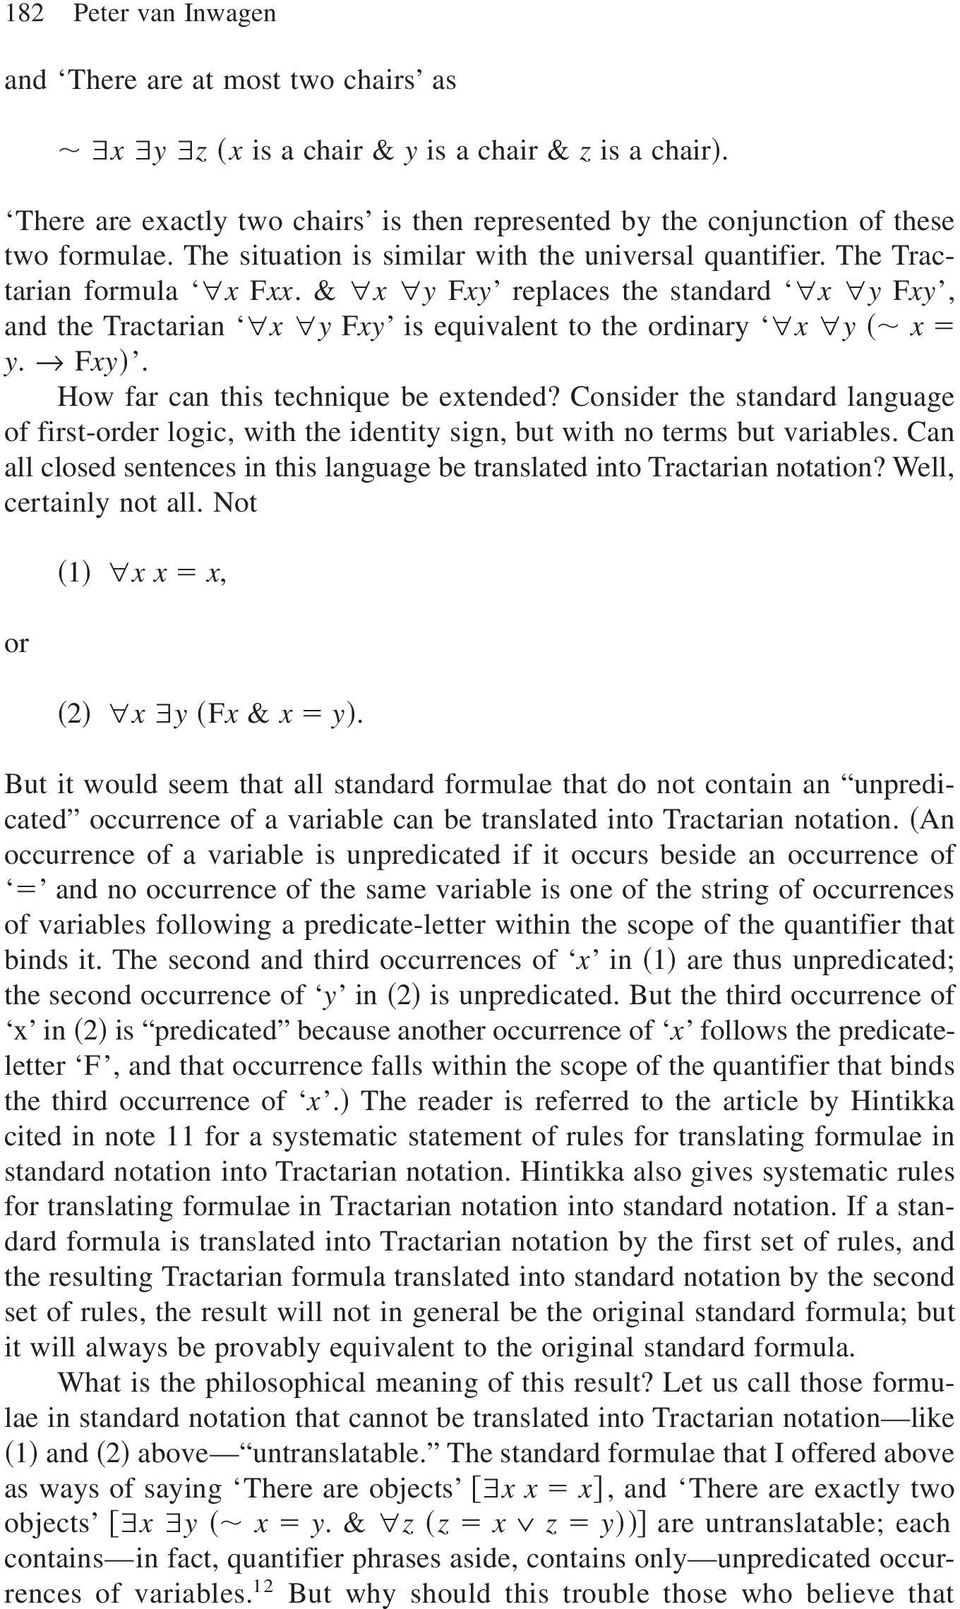 & x yfxy replaces the standard x y Fxy, and the Tractarian x y Fxy is equivalent to the ordinary x y ~; x y. r Fxy!. How far can this technique be extended?